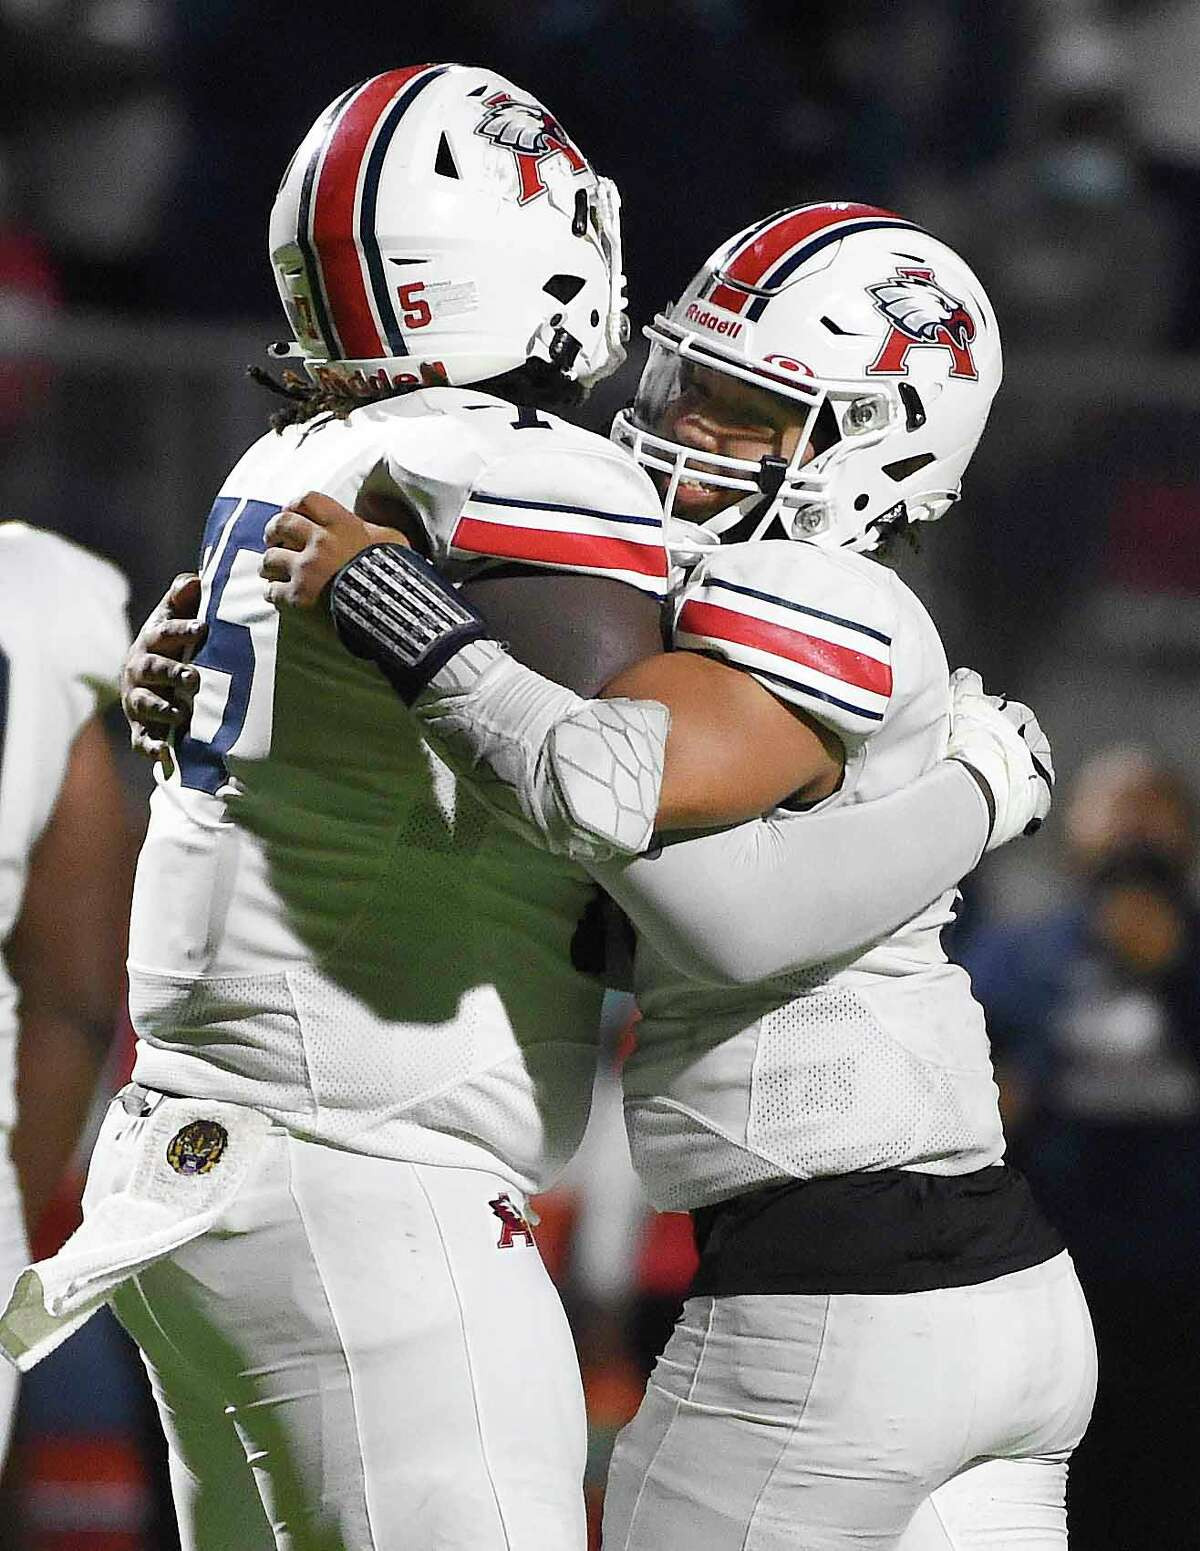 Atascocita quarterback Gavin Session, right, celebrates the team's win with Kameron Dewberry after a high school football game against CE King, Friday, Nov. 13, 2020, in Houston.